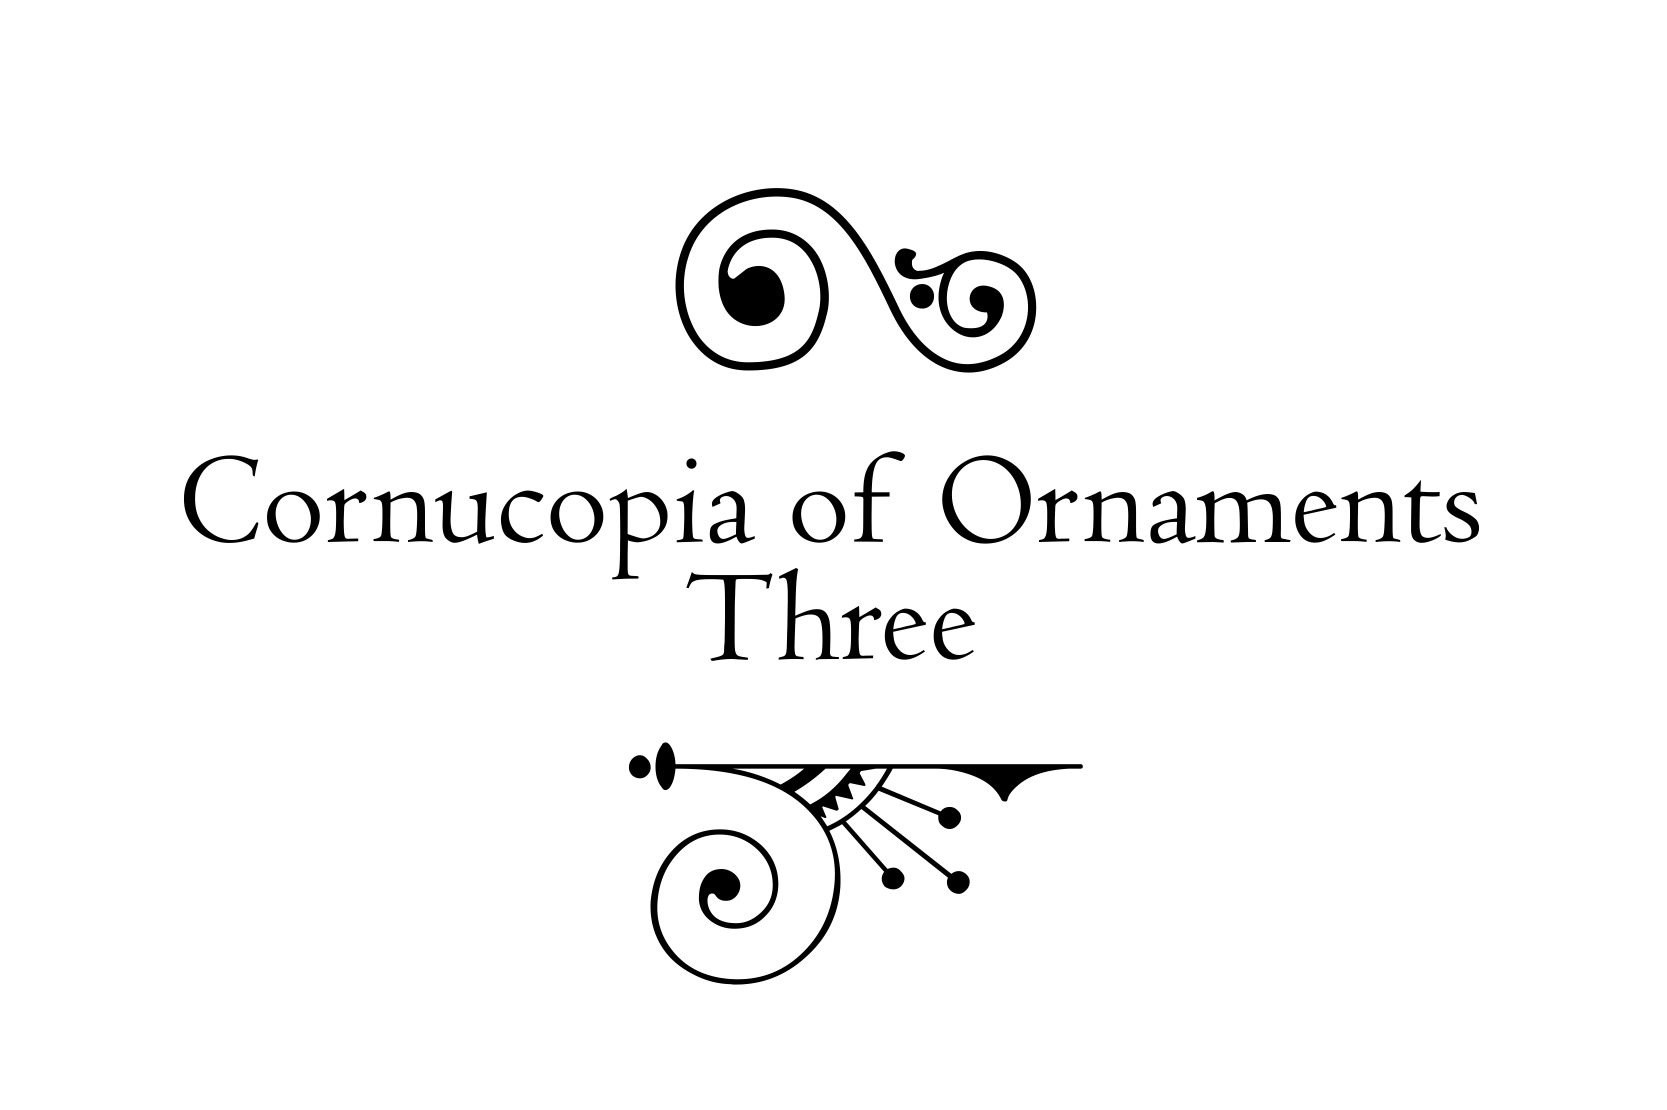 Cornucopia of Ornaments Three example image 4